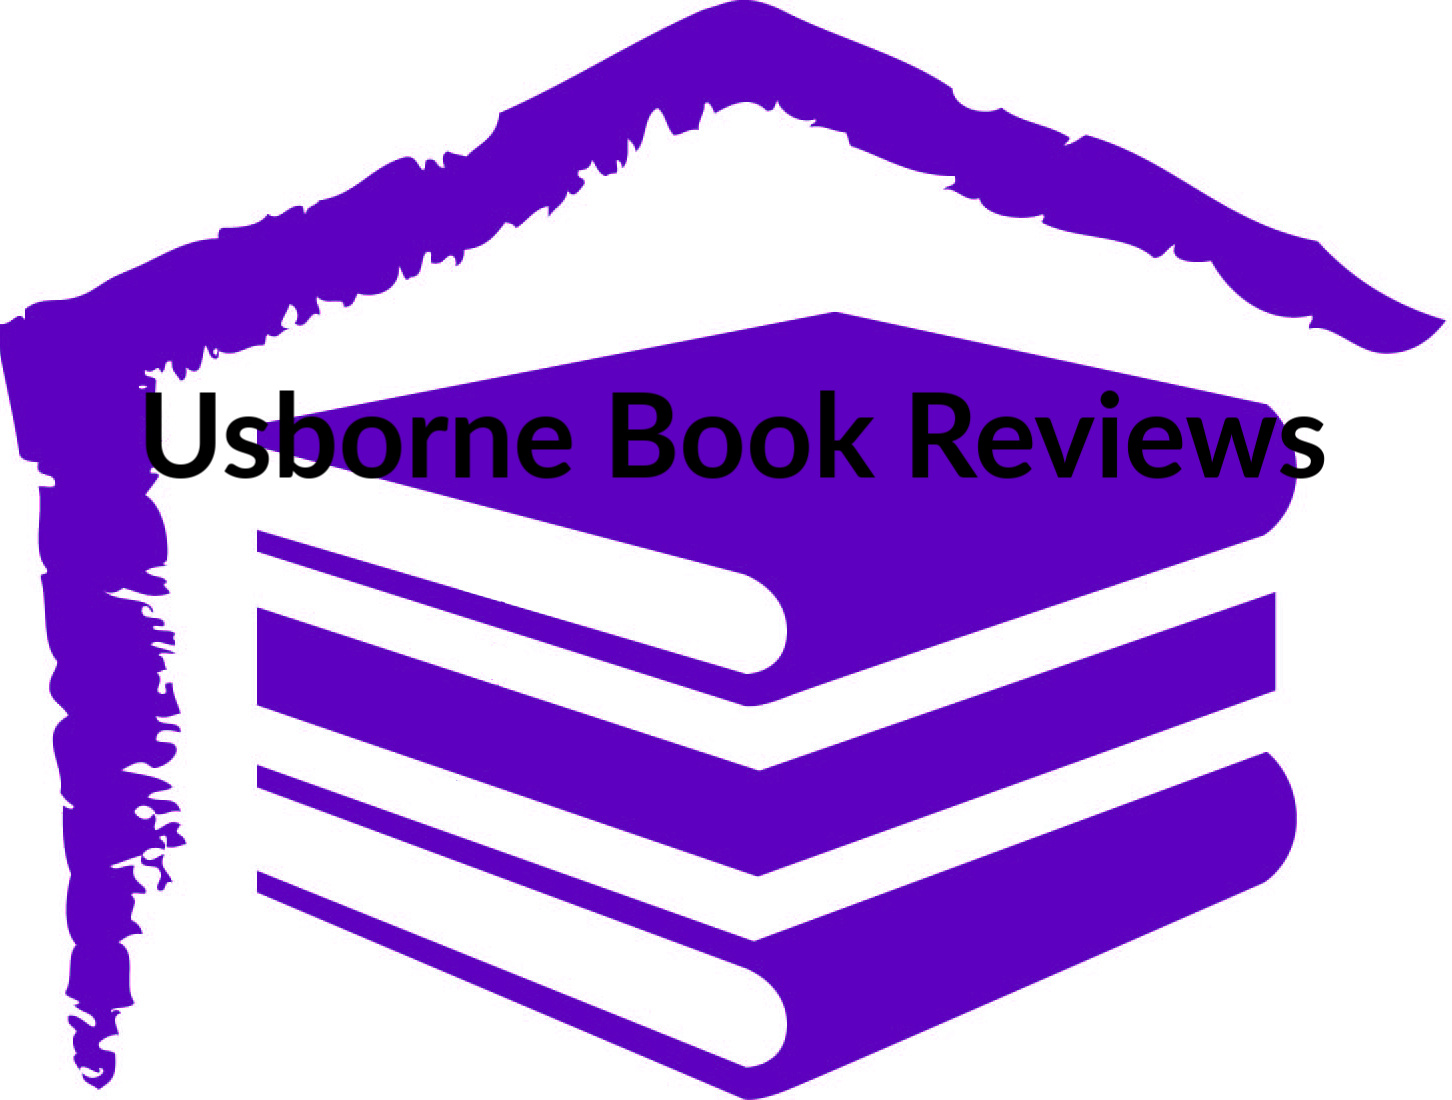 Usborne Book Reviews